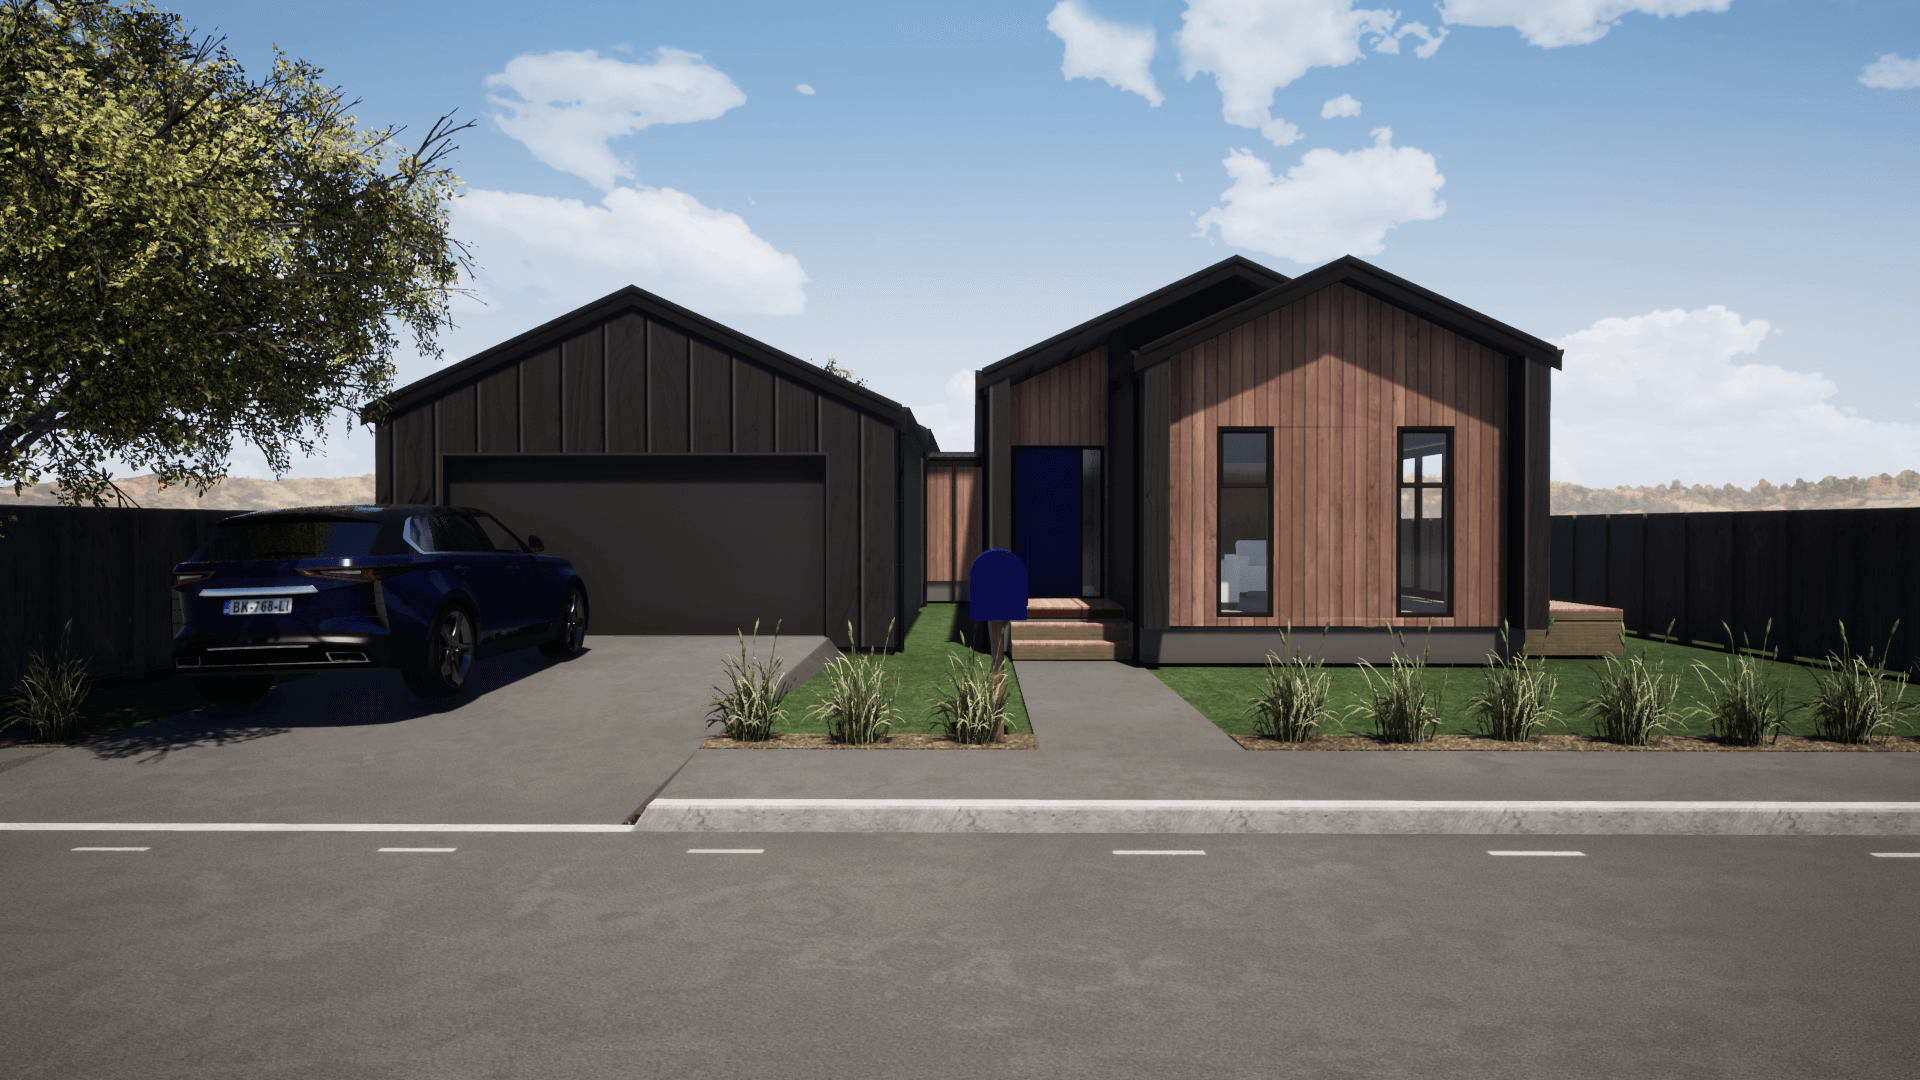 Waitaki 3 bedroom spacious modern prefab home